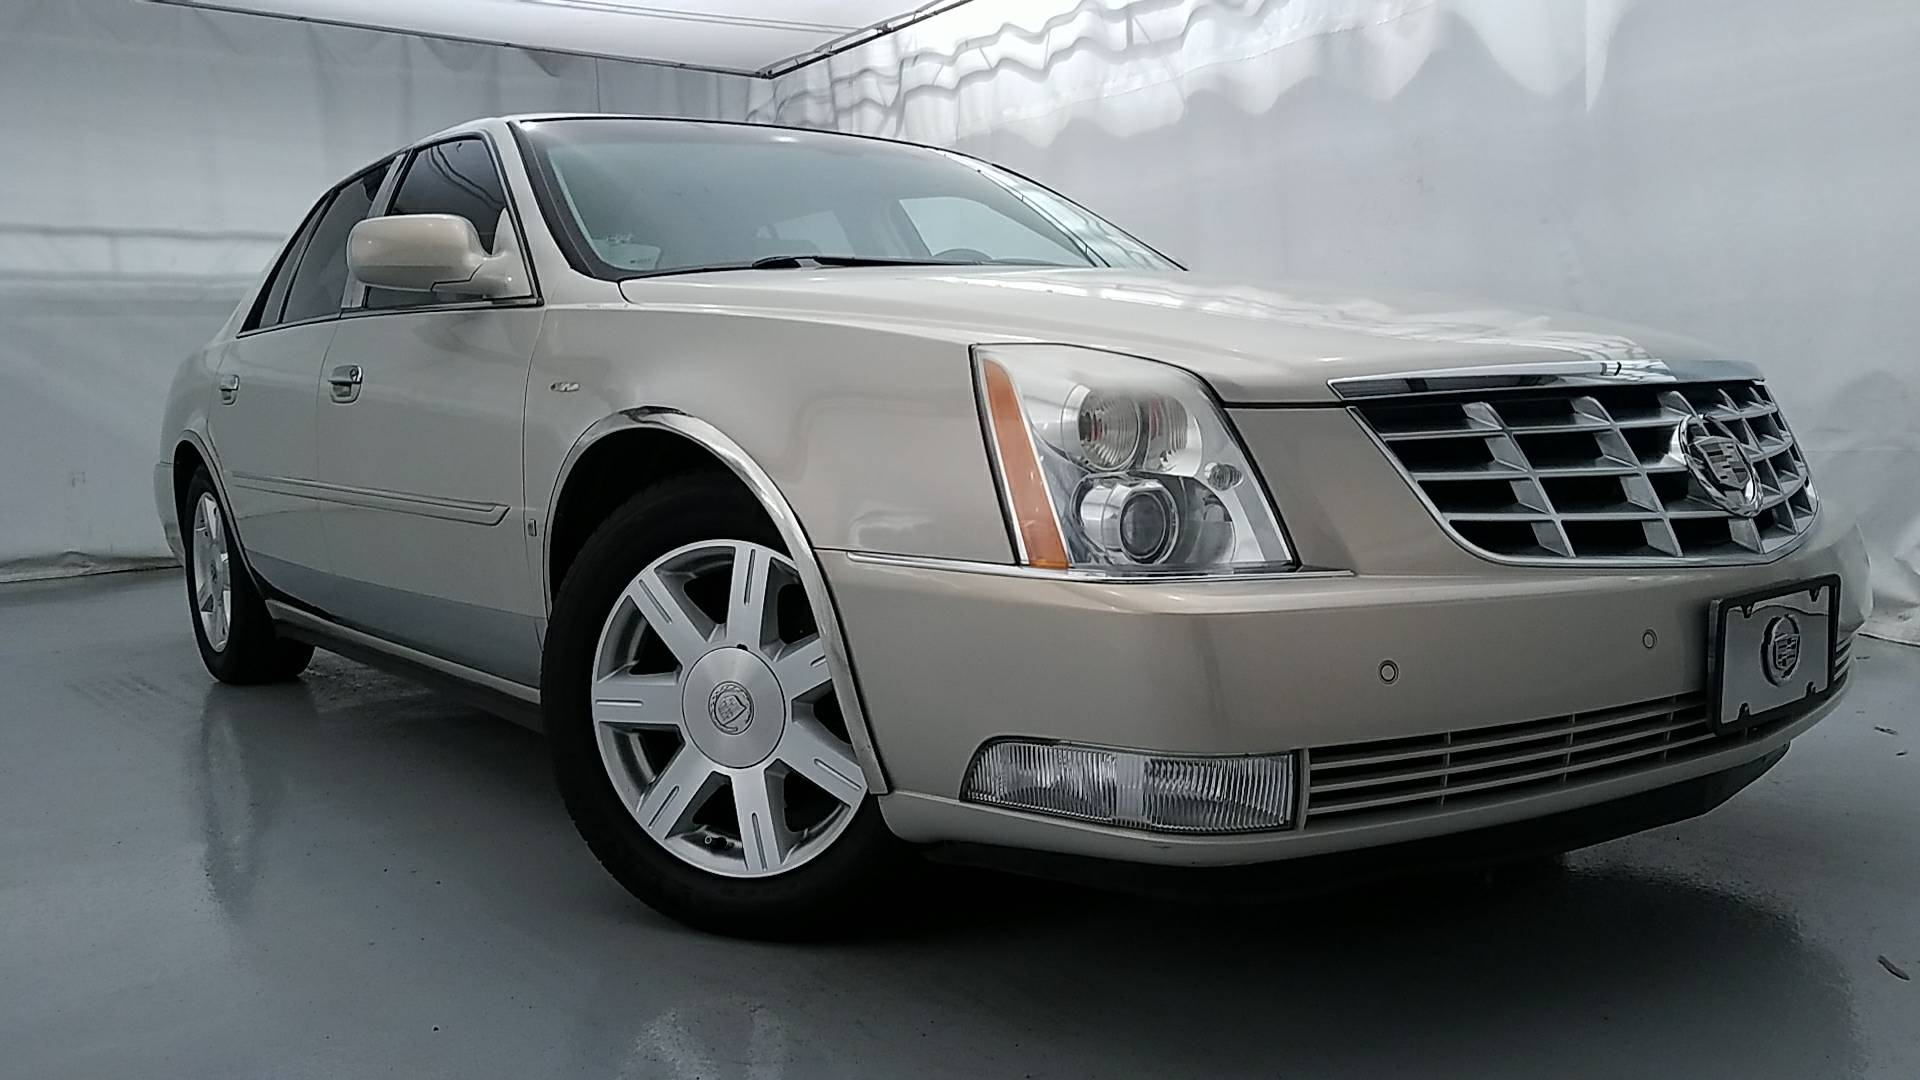 cars gallery dts with design on original cadillac in hd ideas